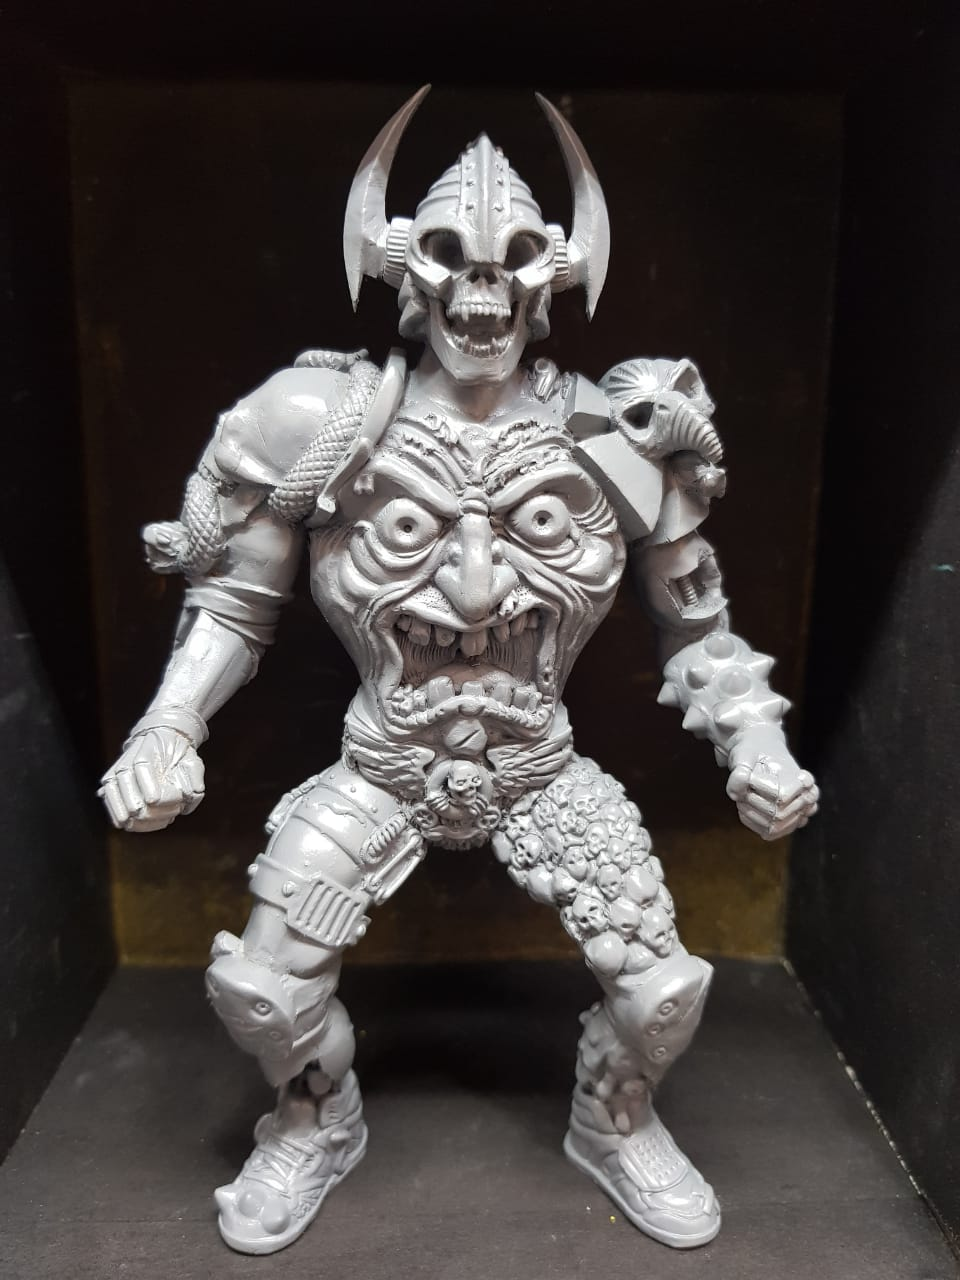 SKATOR EVIL RIDER OF THE OLD SCHOOL Kalaka Toys Resin Toy Masters of the Universe